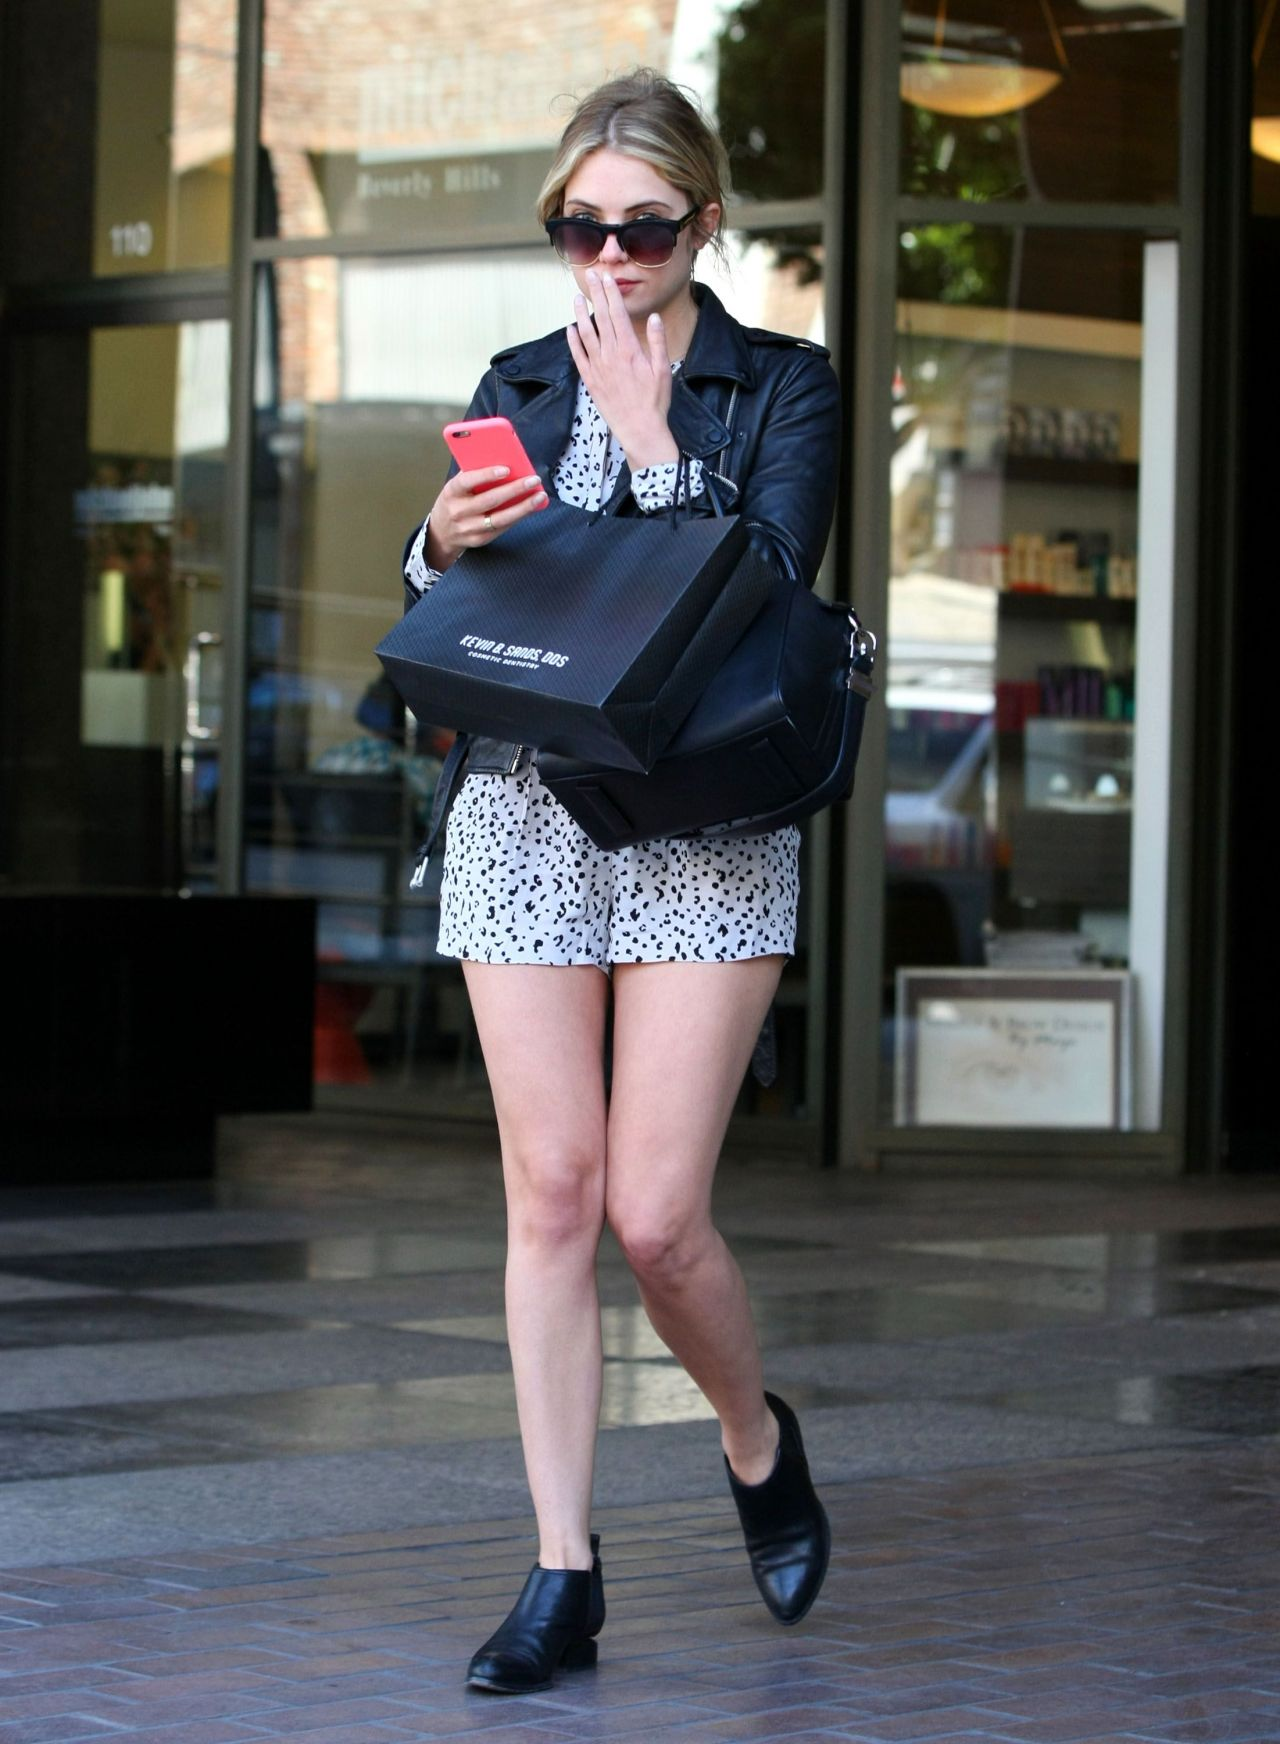 Ashley Benson Shows Off Her Legs in a pair of short shorts - Beverly Hills, April 2015